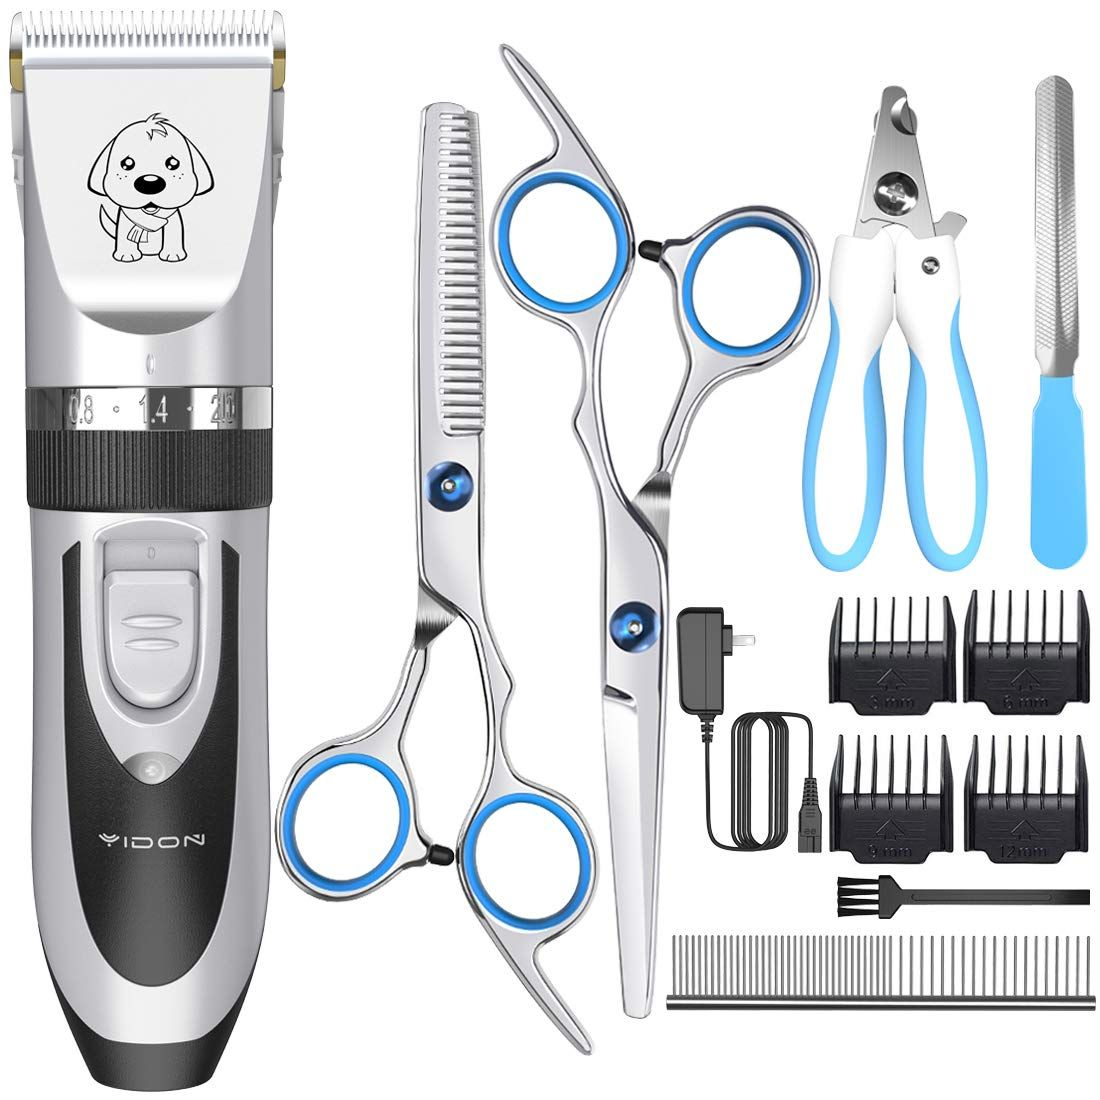 The Top 10 Best Dog Clippers For Shih Tzu Dogs 2019